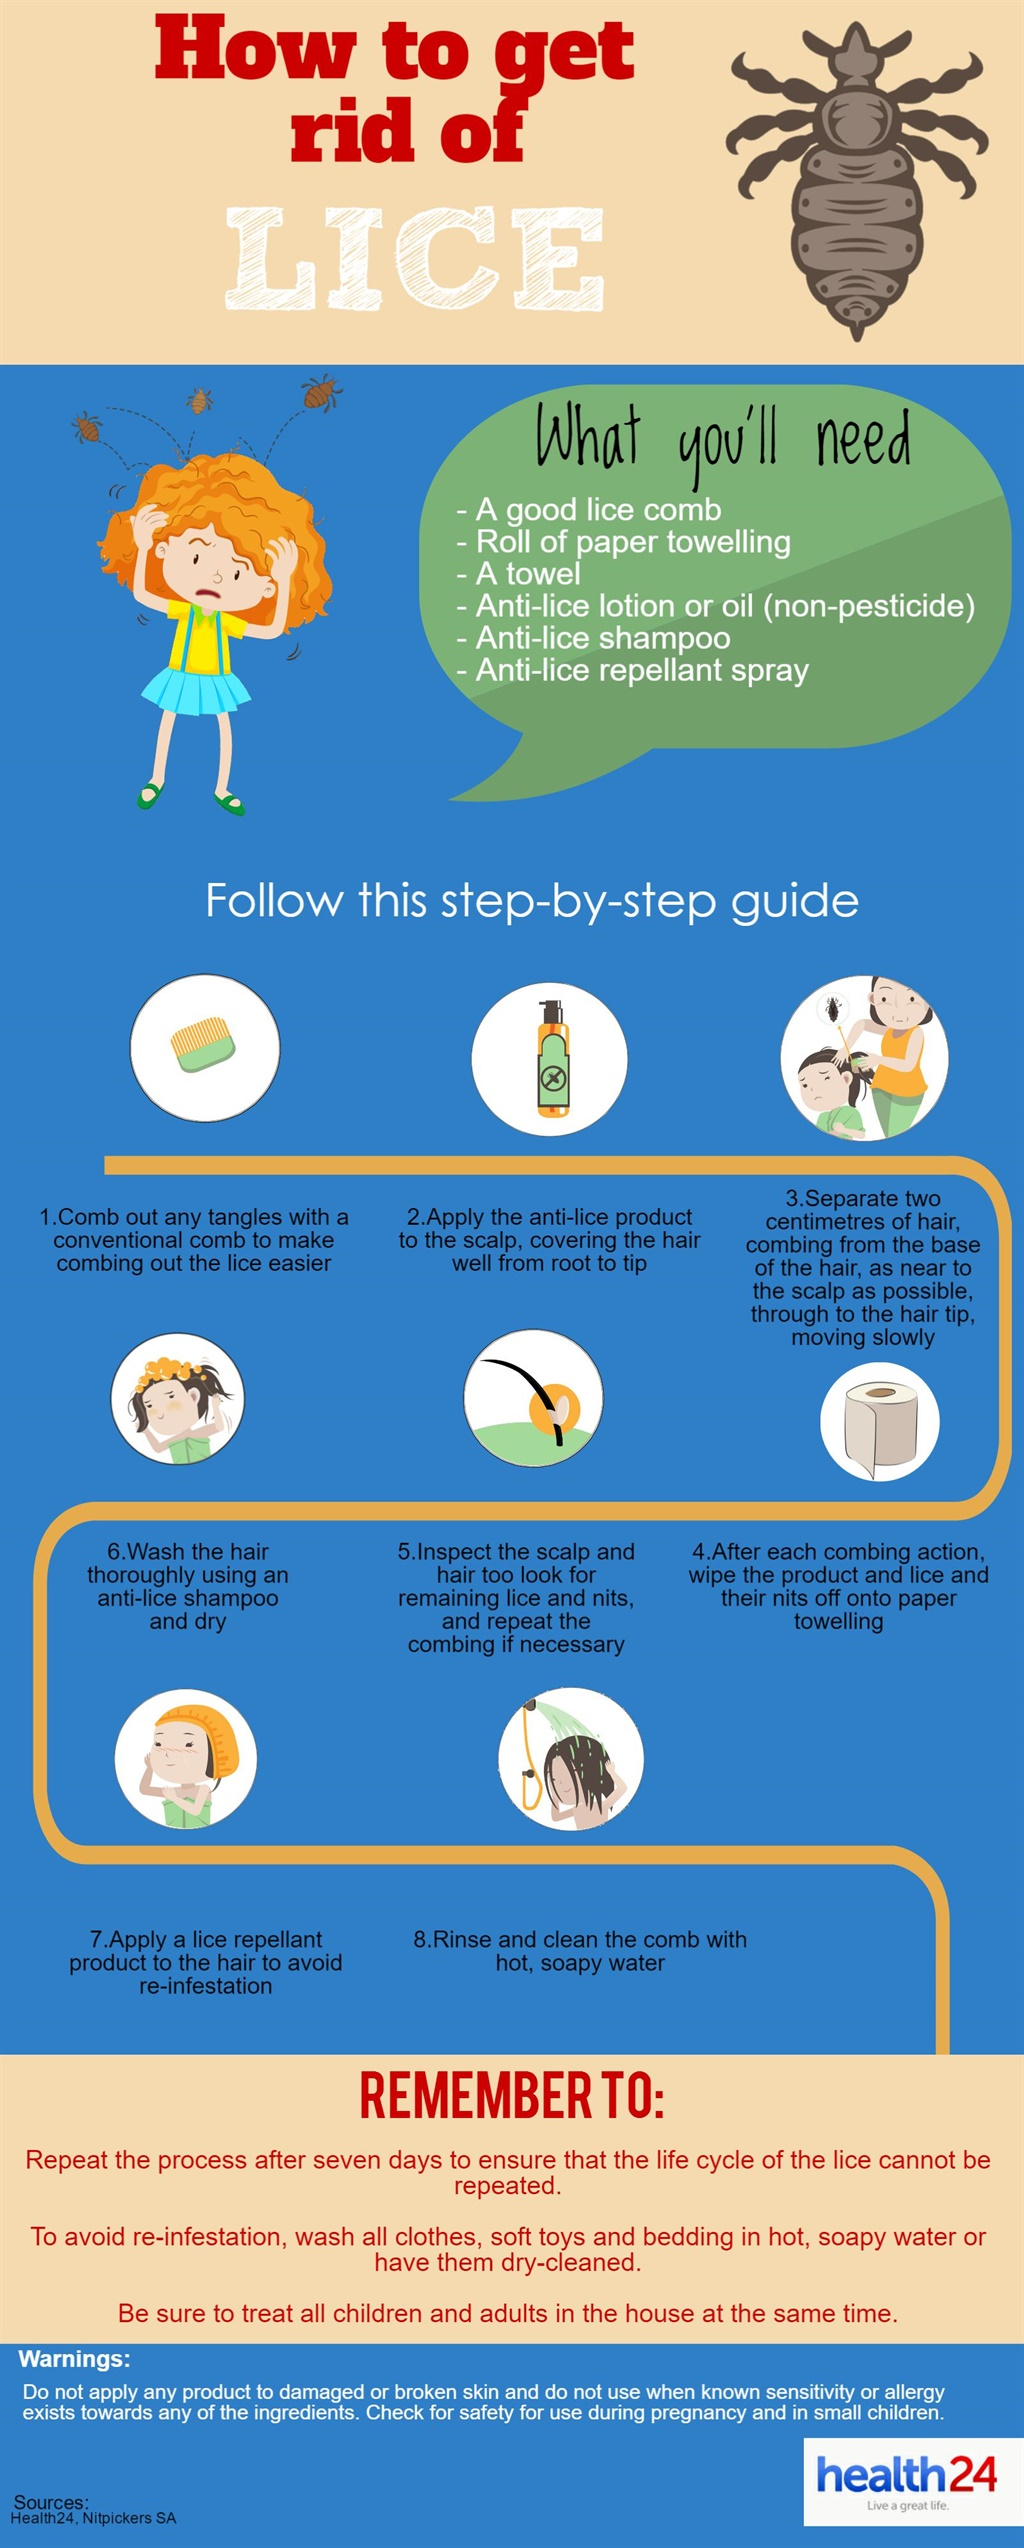 Step-by-step guide to remove head lice